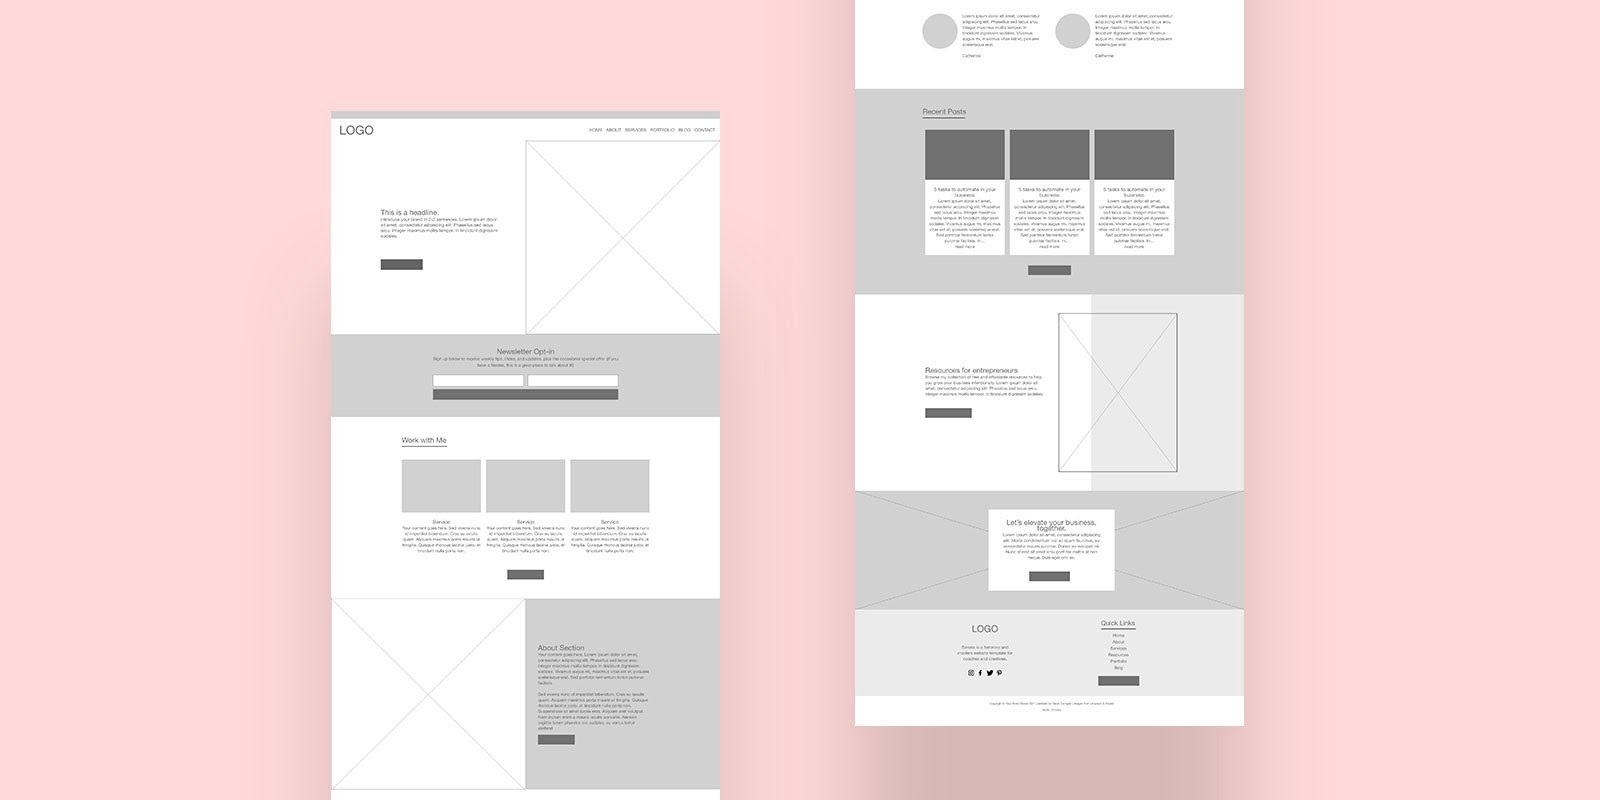 Example of a low-fidelity wireframe